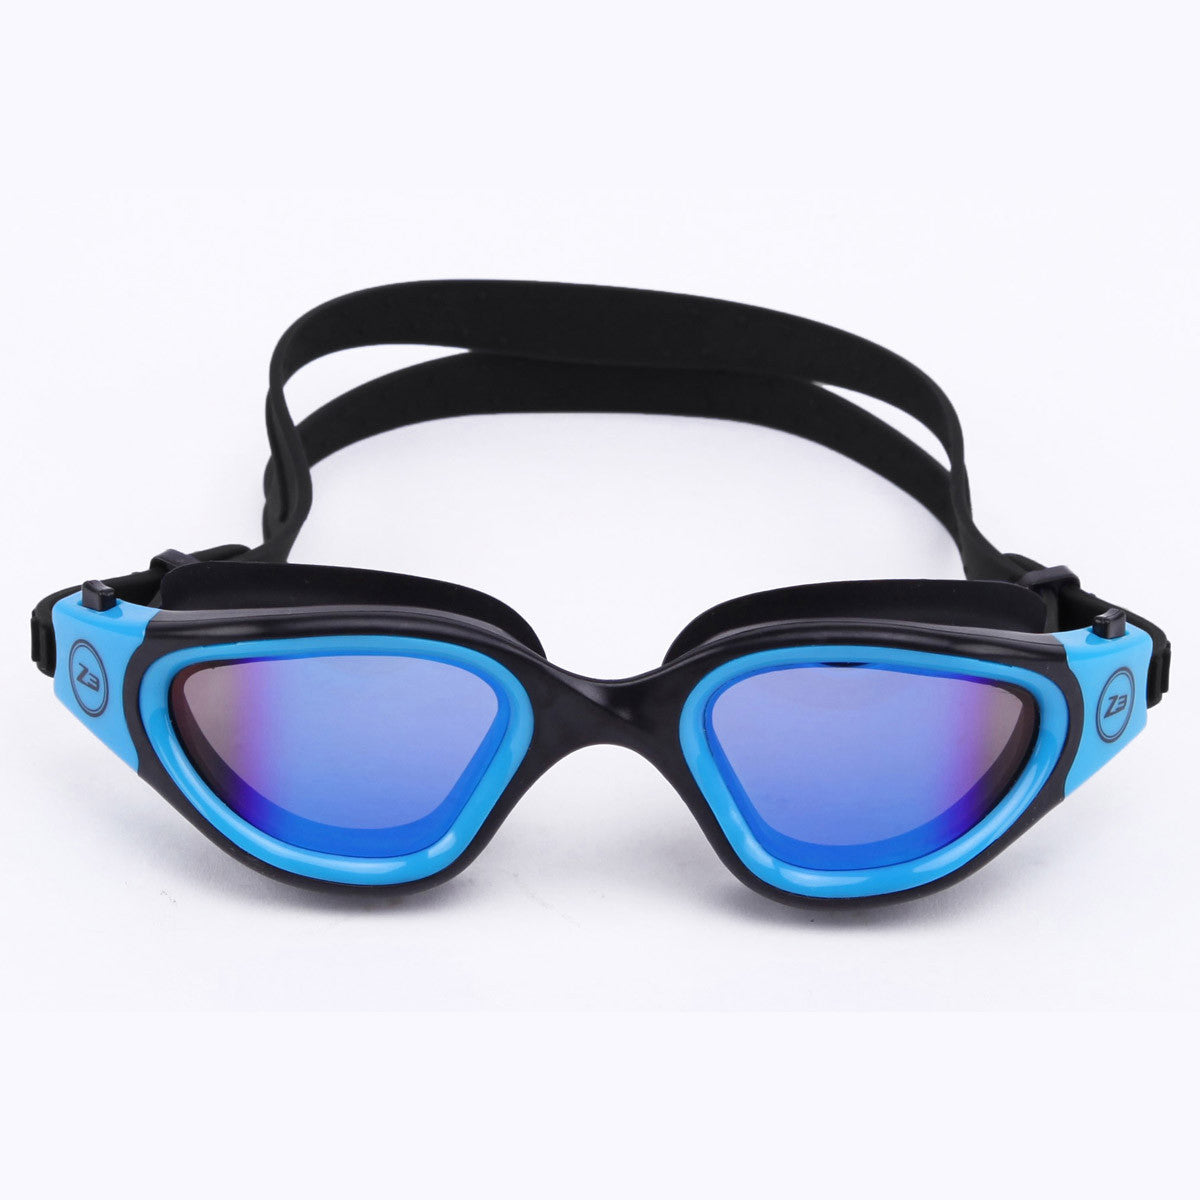 Triathlon goggles in blue polarised for triathletes and swimmers